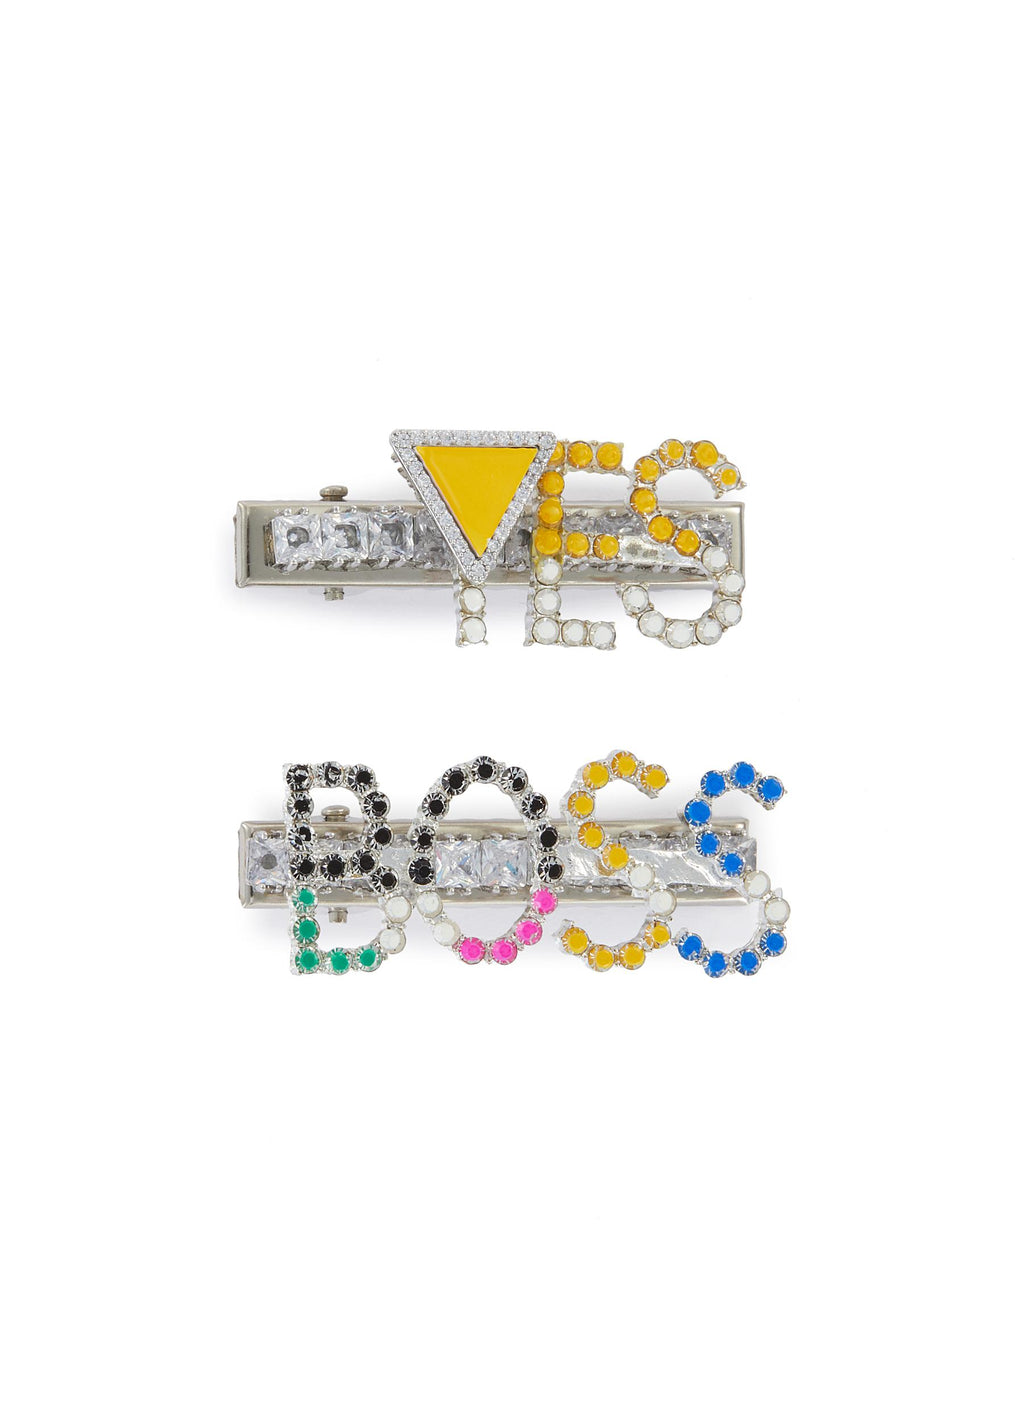 'Yes Boss' Crystal Embellished Hair Clips